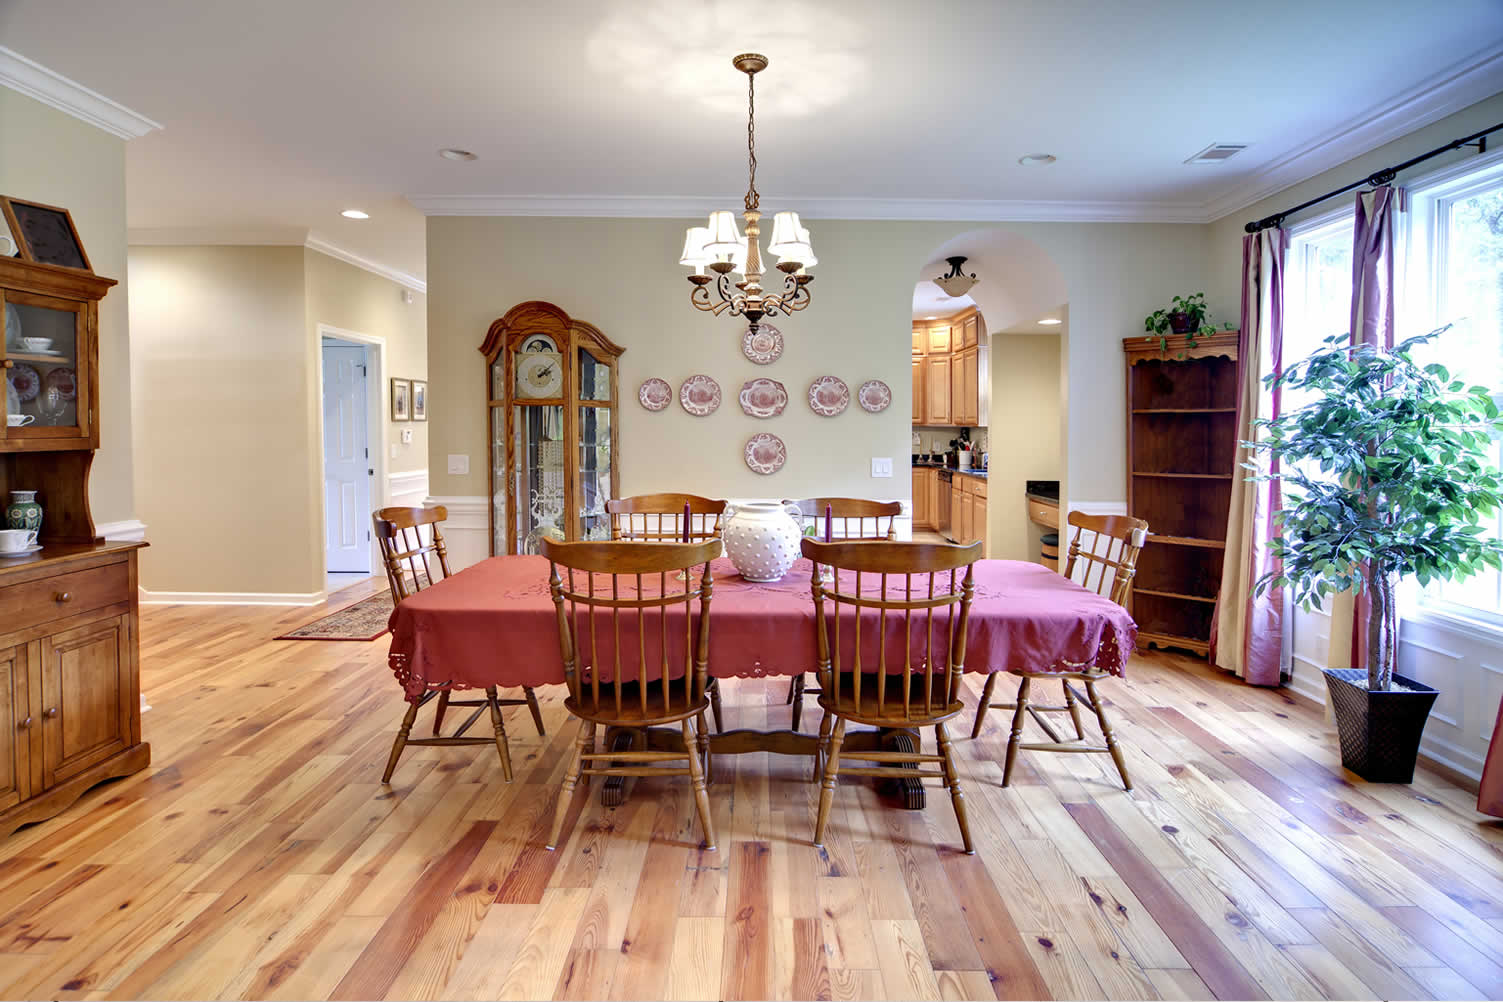 different home decorating styles to consider